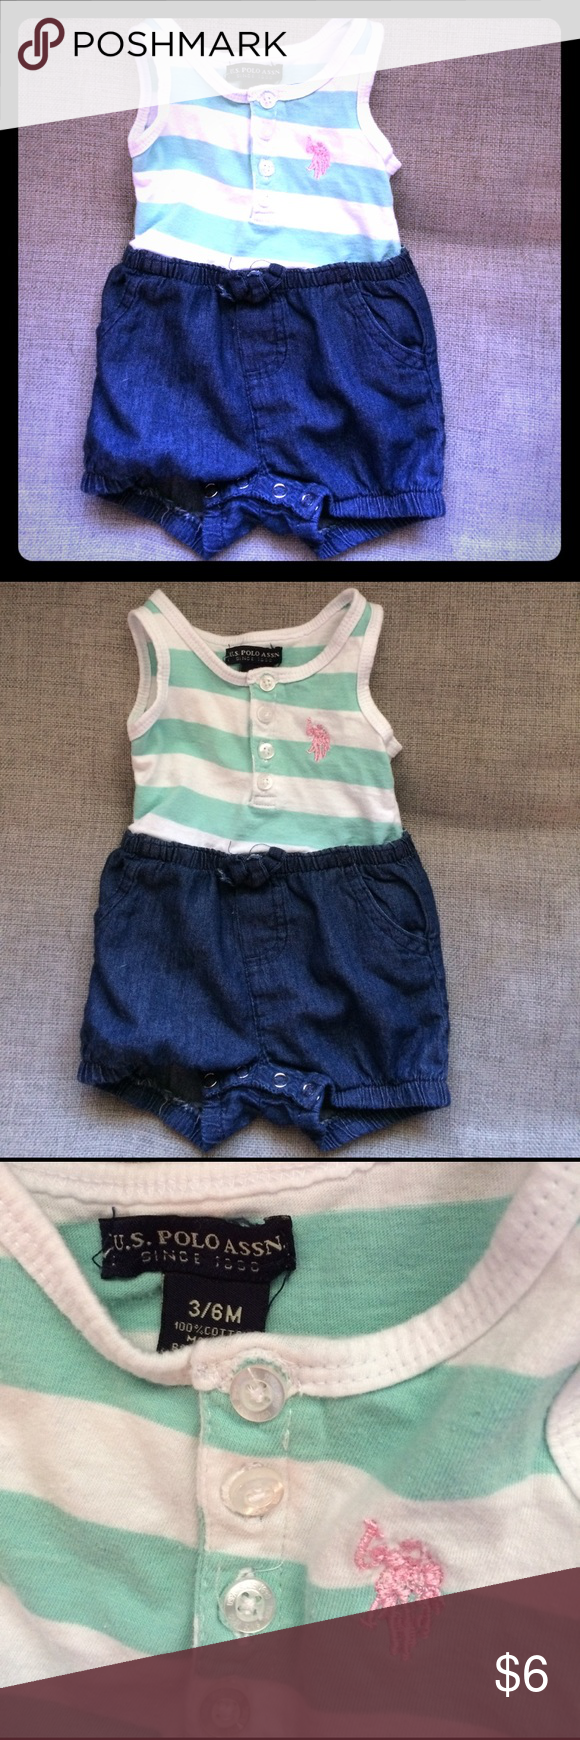 Baby girl romper Price is firm; I don't accept offers. No trades. Bundle and save! Polo by Ralph Lauren Matching Sets